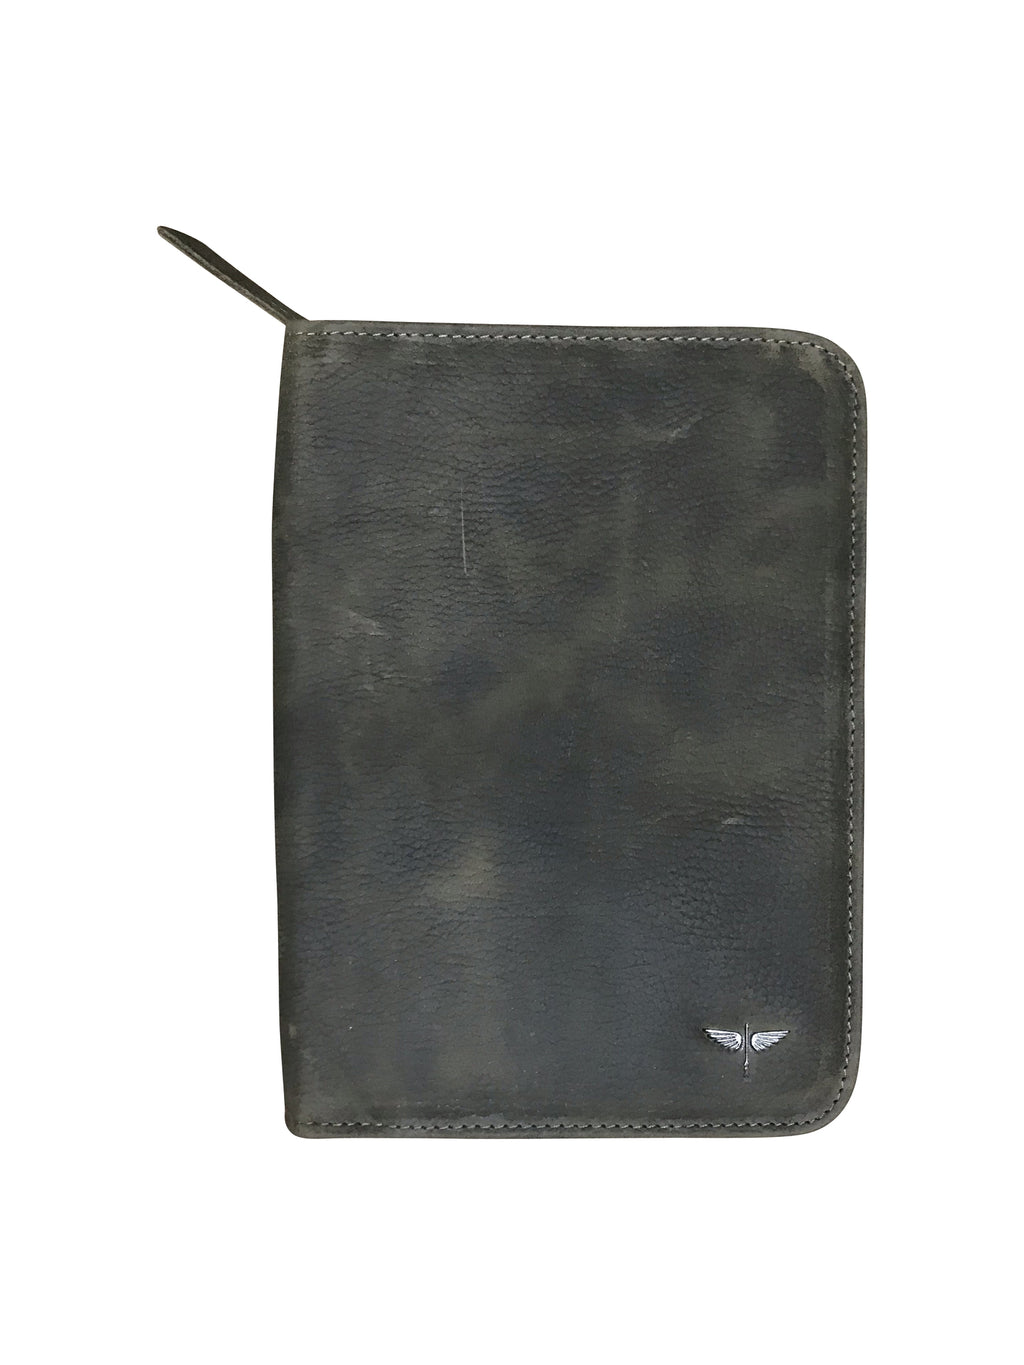 CLHEI Folio Wallet | Military